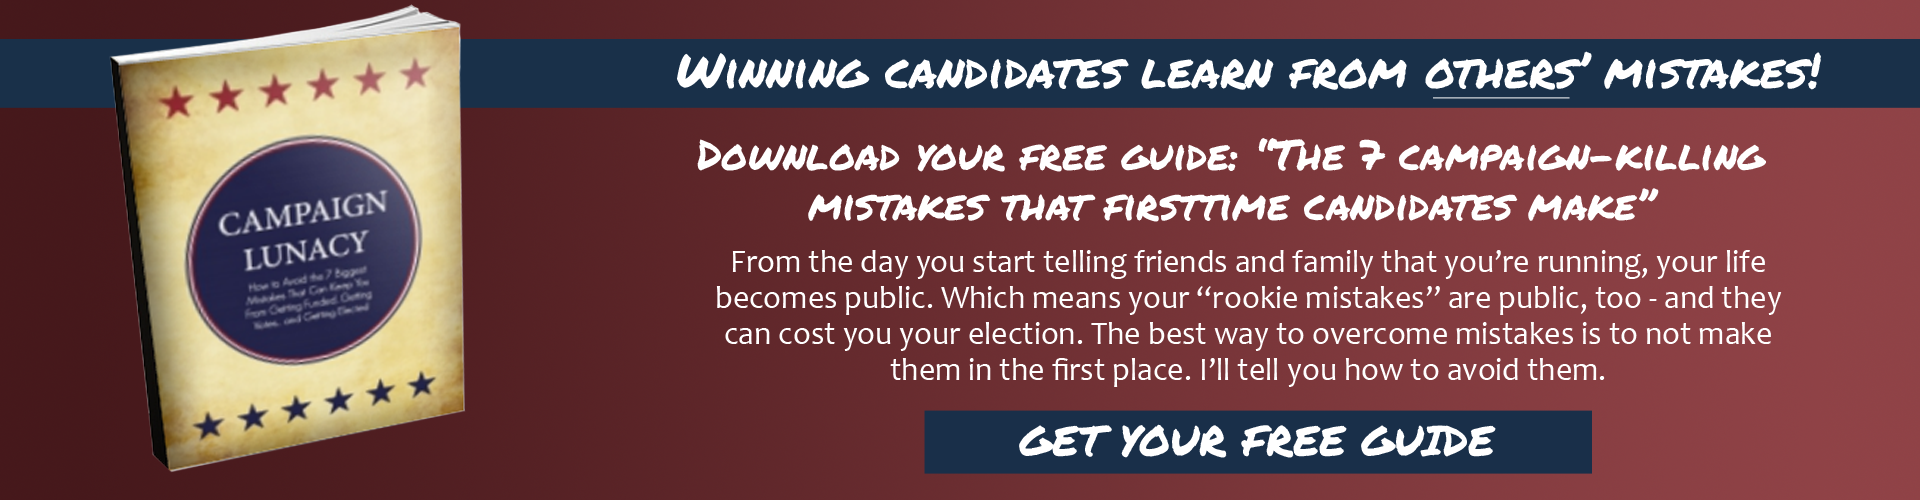 7 Campaign-Killing Mistakes that First-Time Candidates Make